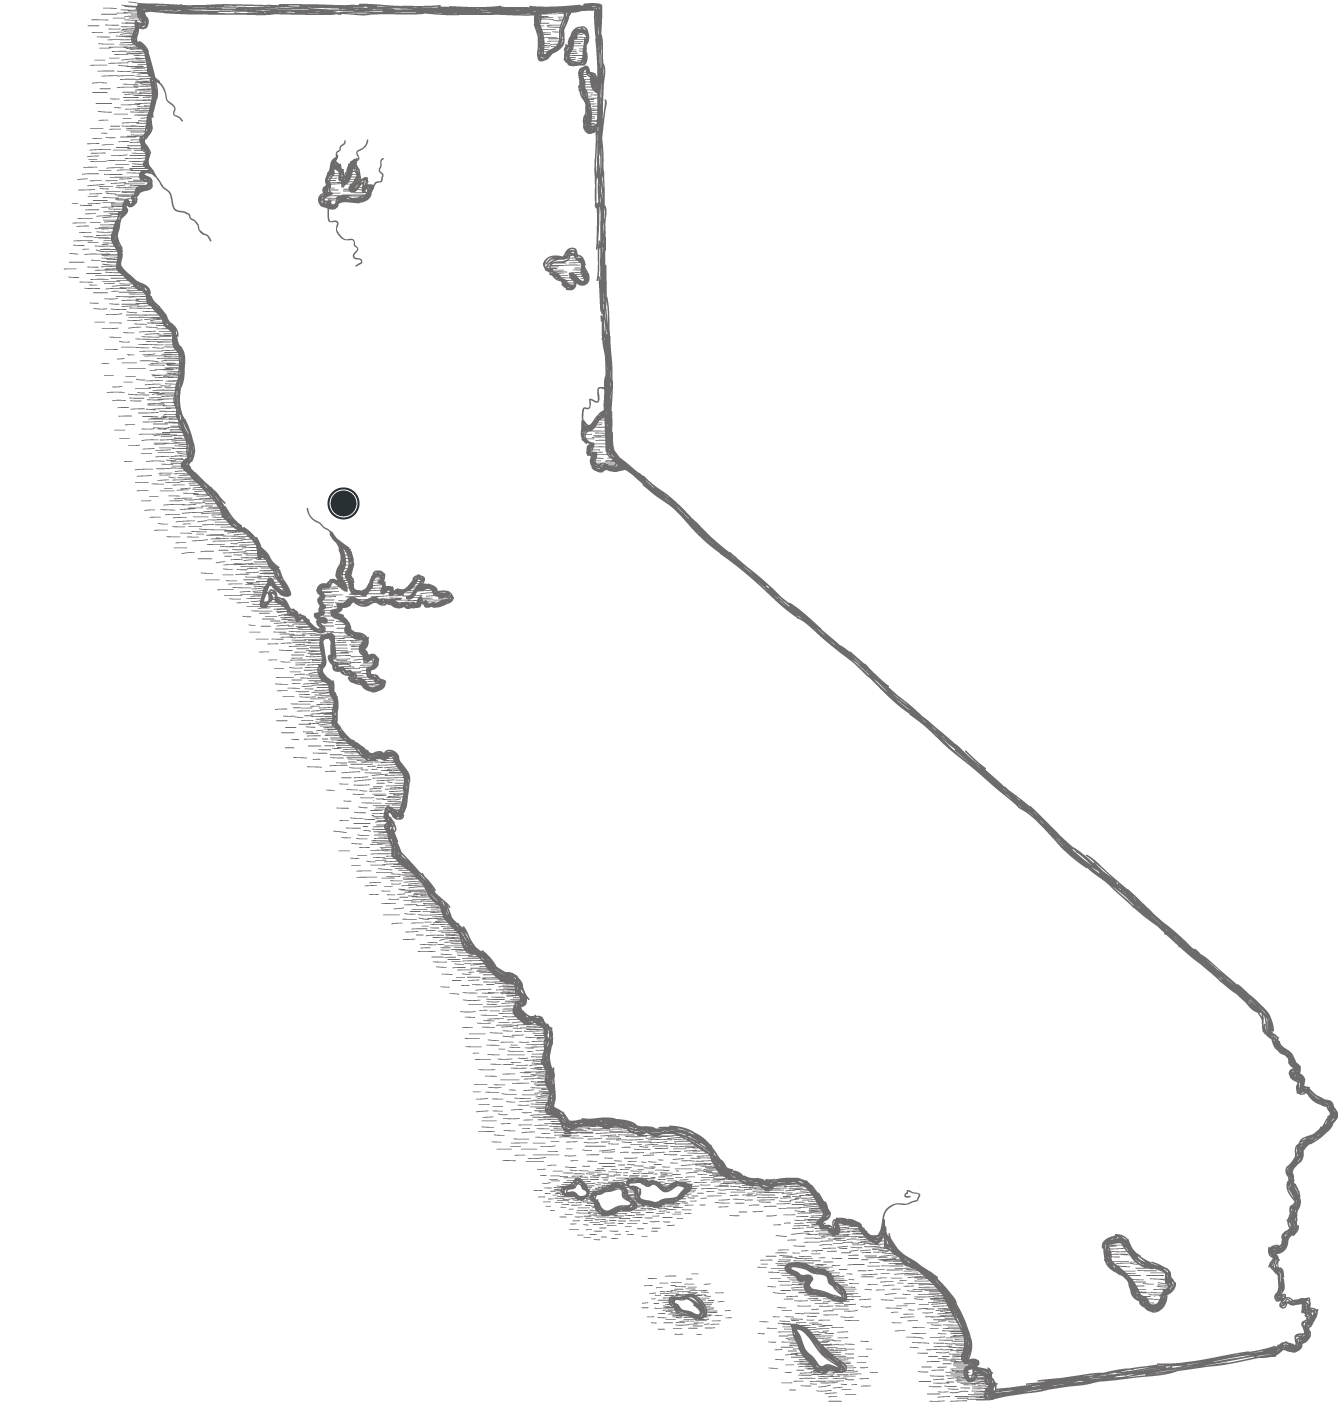 Artistic sketch of the state of California - Rutherford highlighted